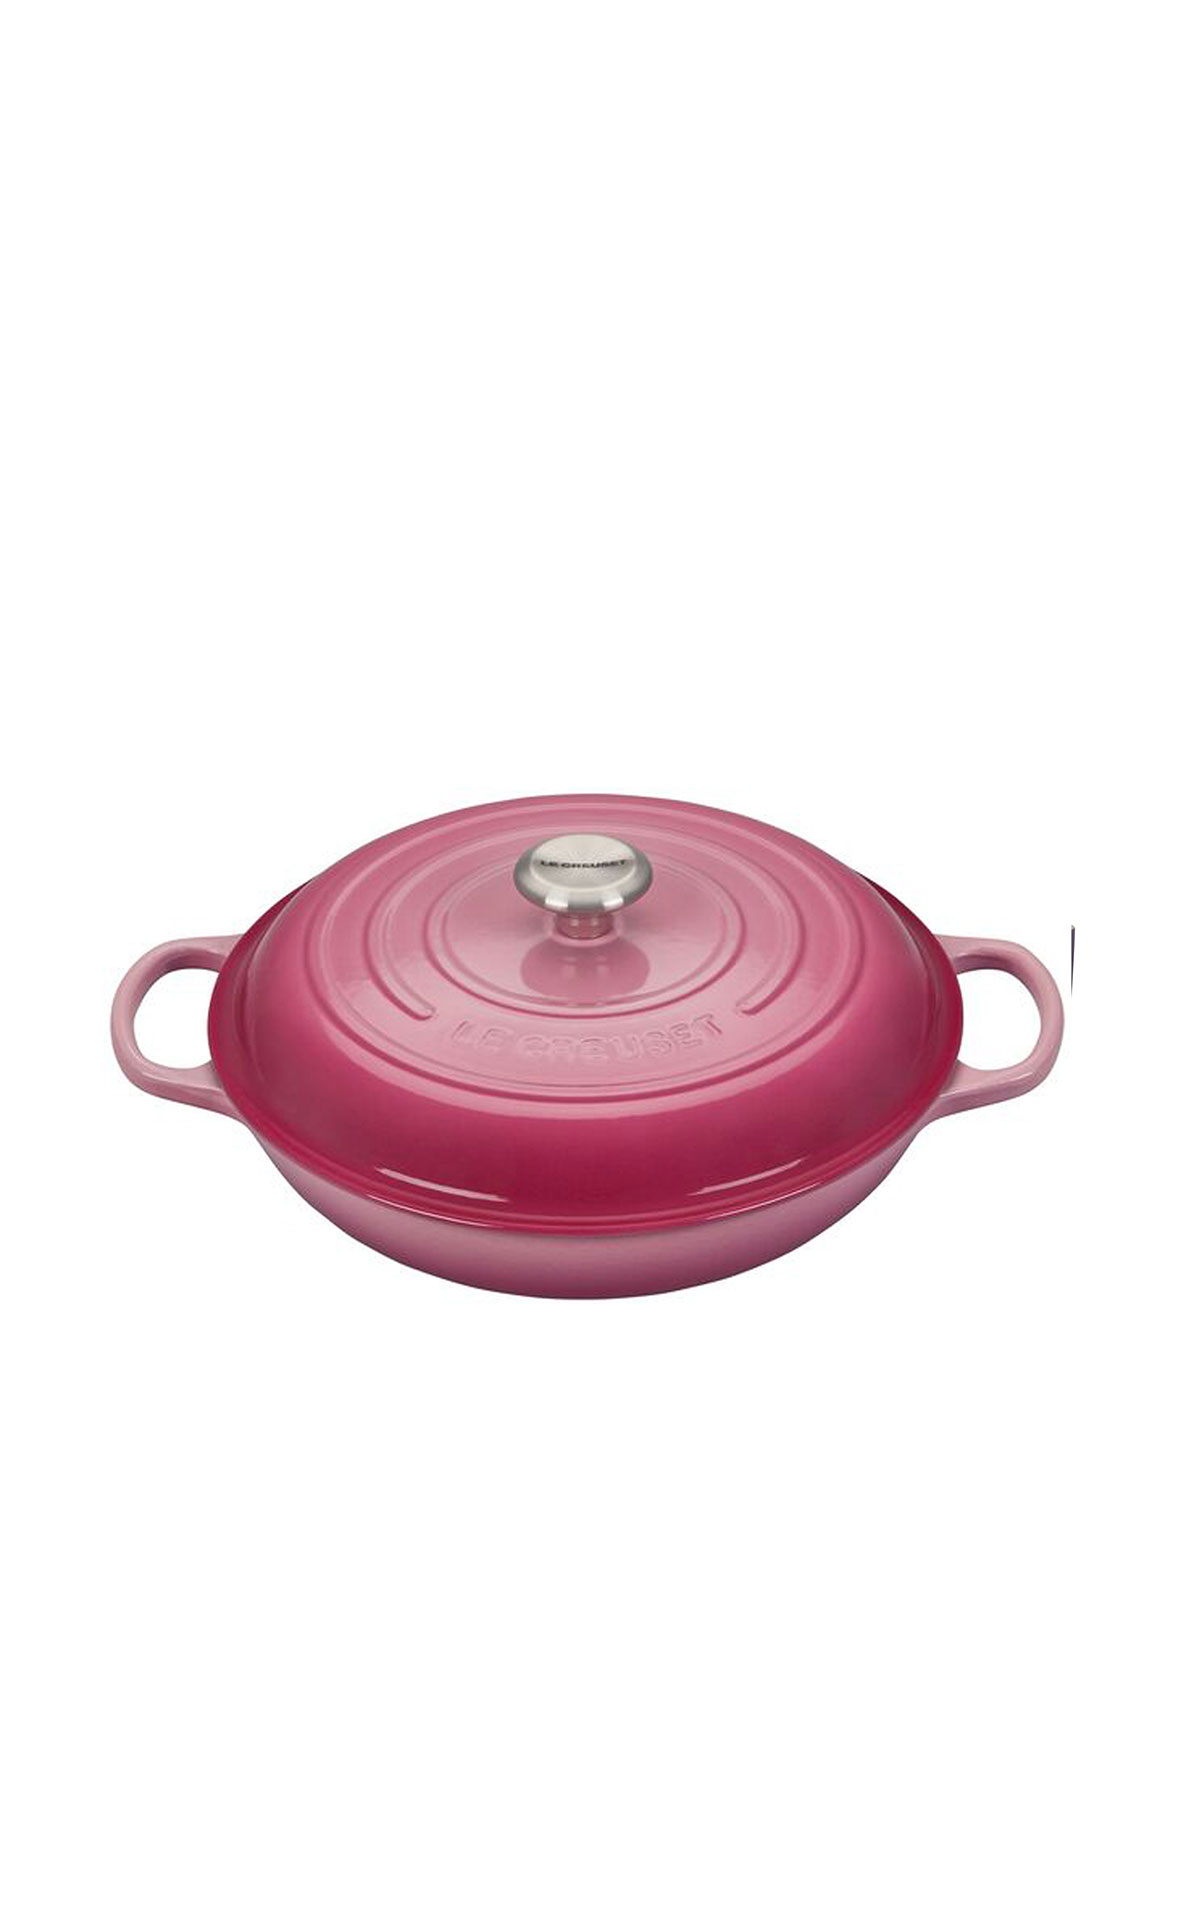 Le Creuset Berry 30cm shallow casserole dish from Bicester Village